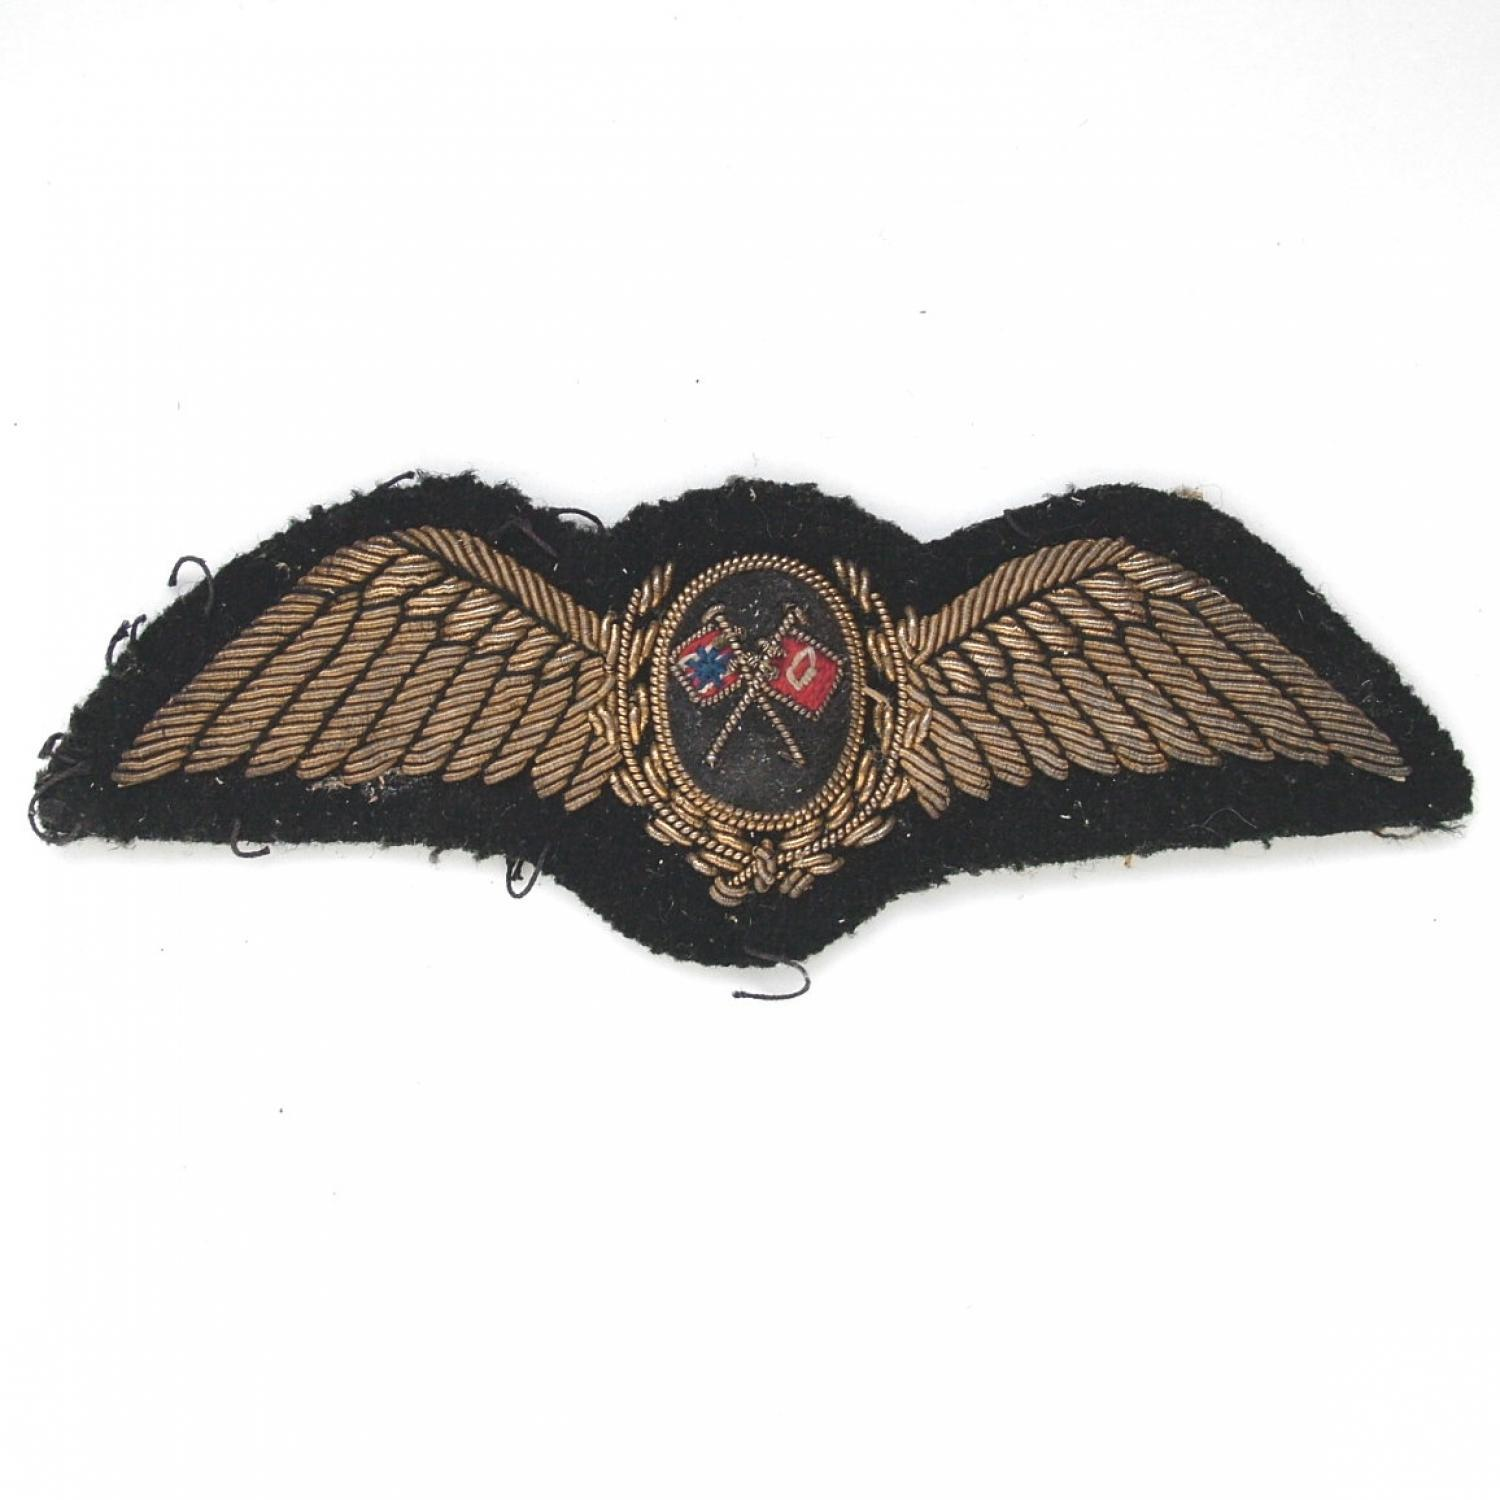 Hunting Clan Aviation Pilot Wing